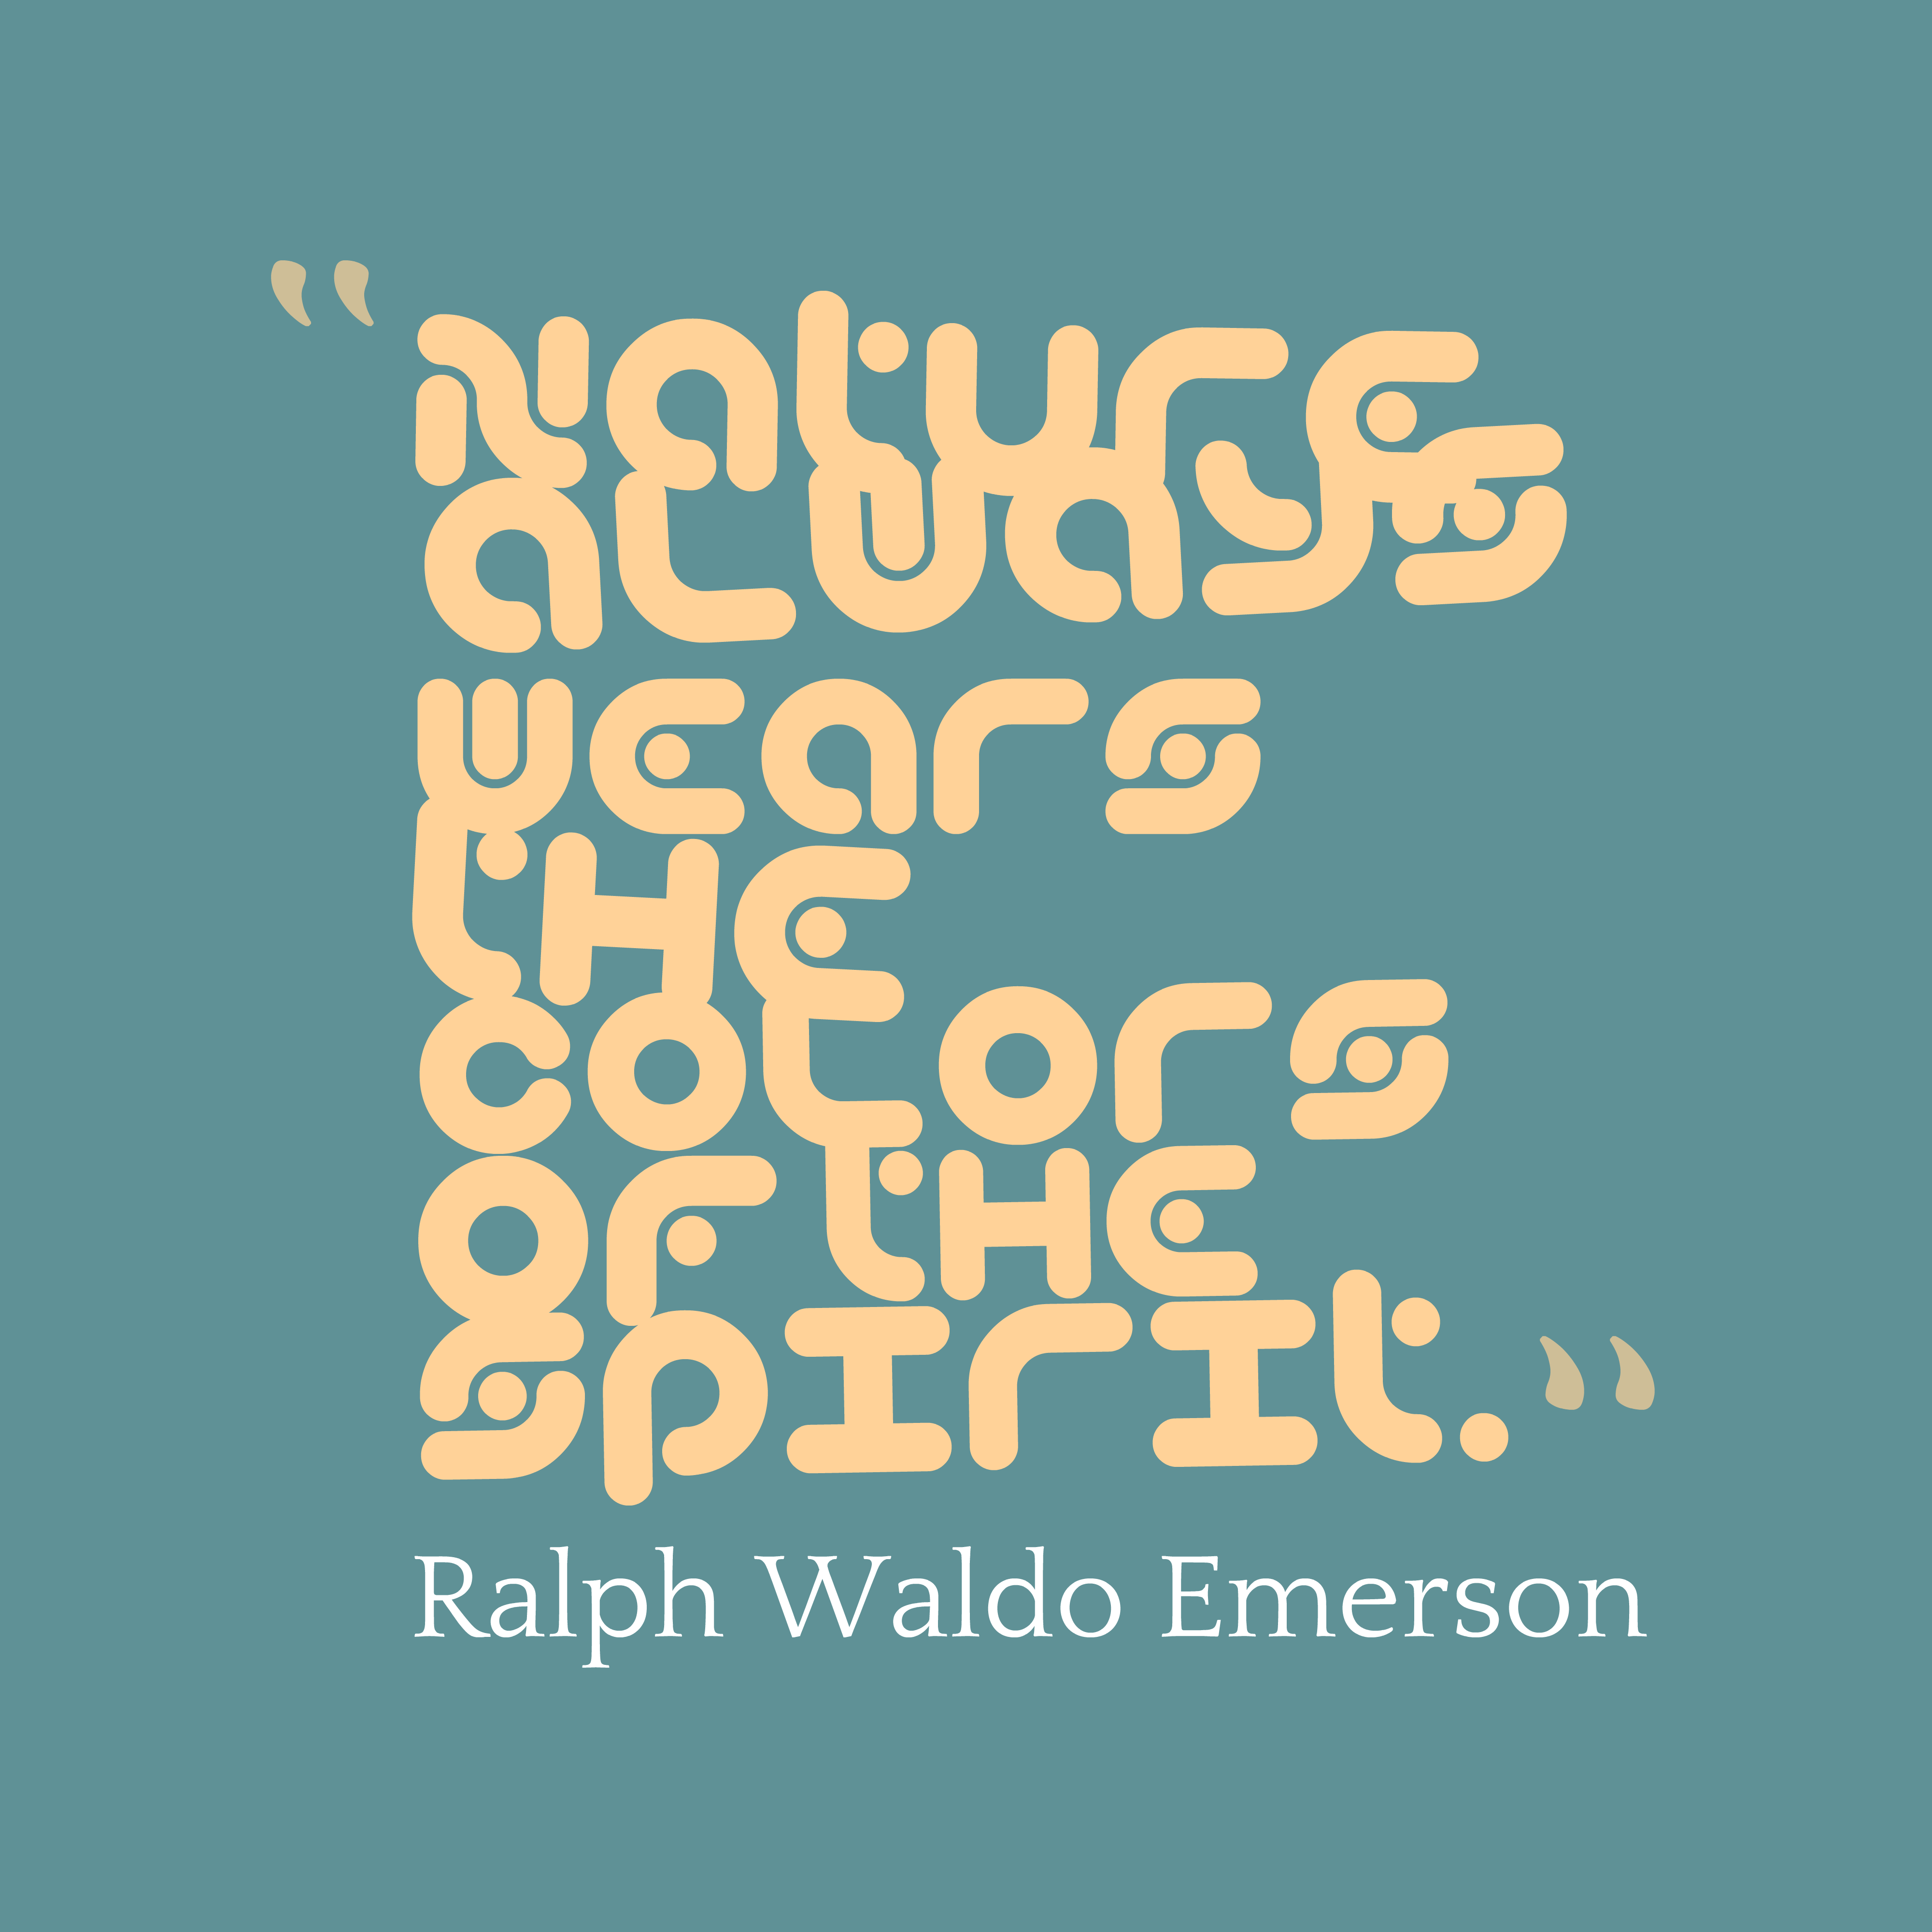 essays poems ralph waldo emerson pdf Emerson's essay on friendship is one of the most remembered and highly respected essays dating back to the 19th  friendship by ralph waldo emerson philosophy essay.